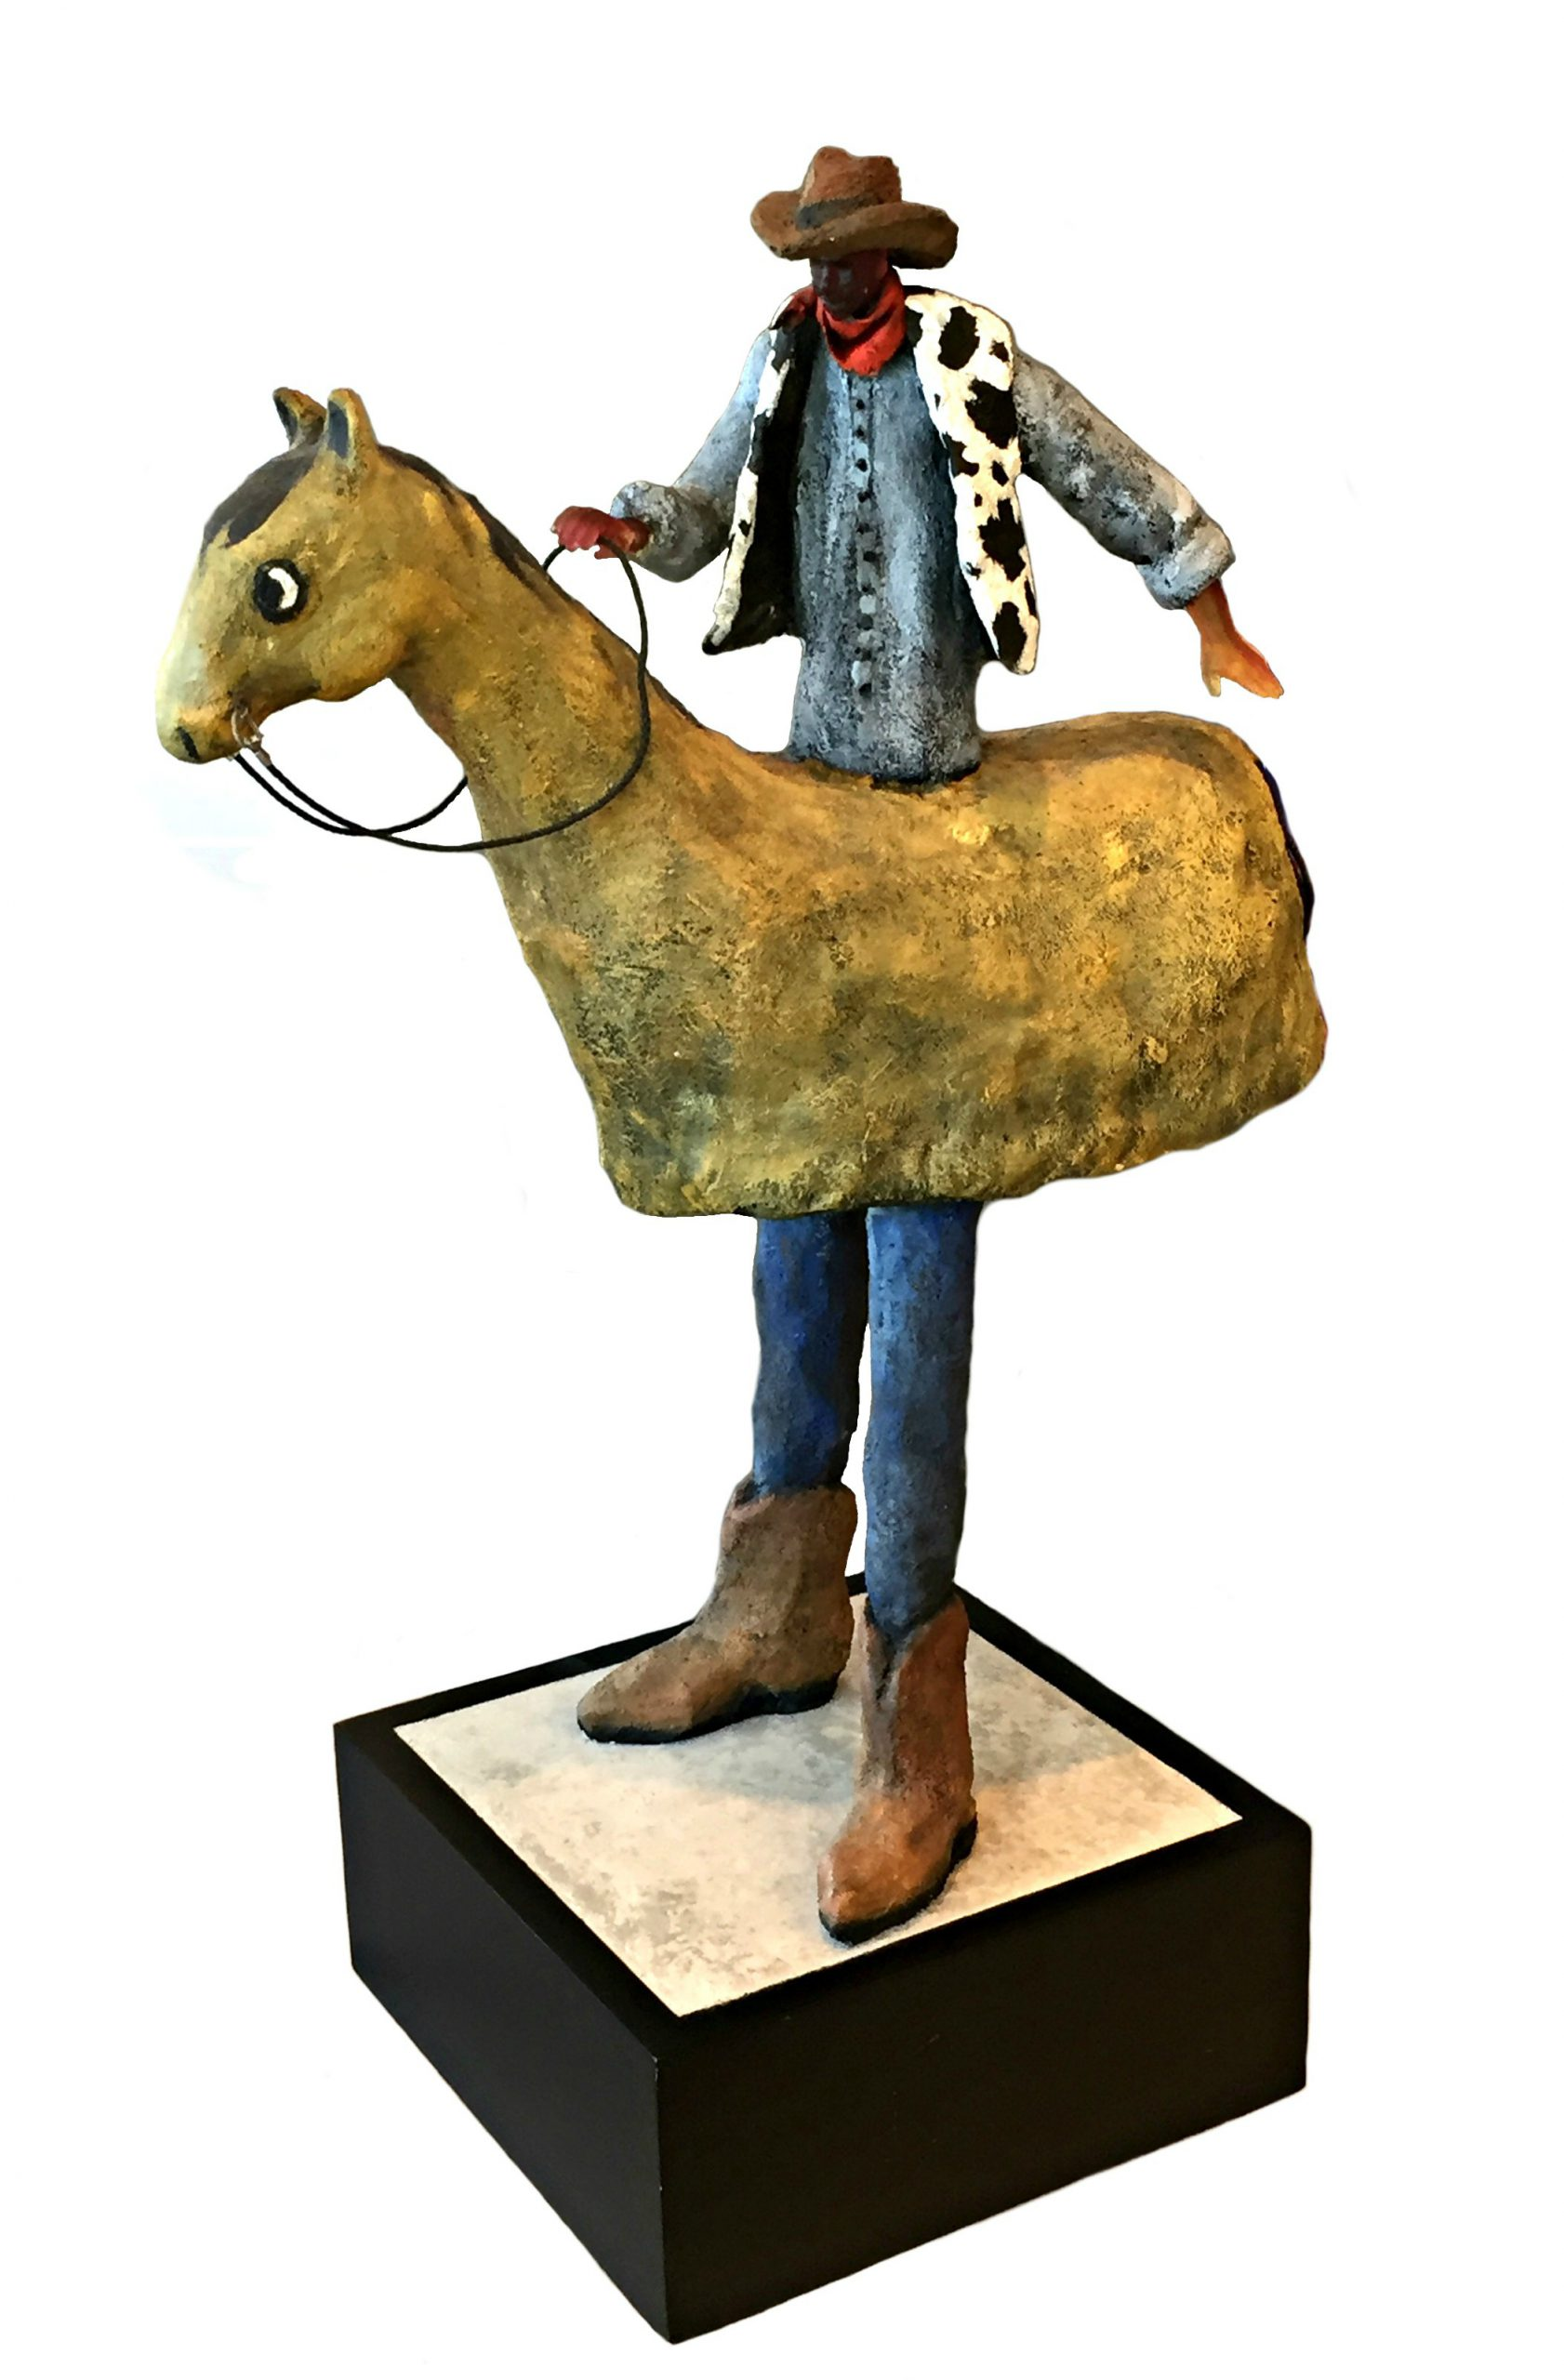 Giddy Up, glass and concrete cowboy sculpture by Connie Geerts   Effusion Art Gallery + Cast Glass Studio, Invermere BC